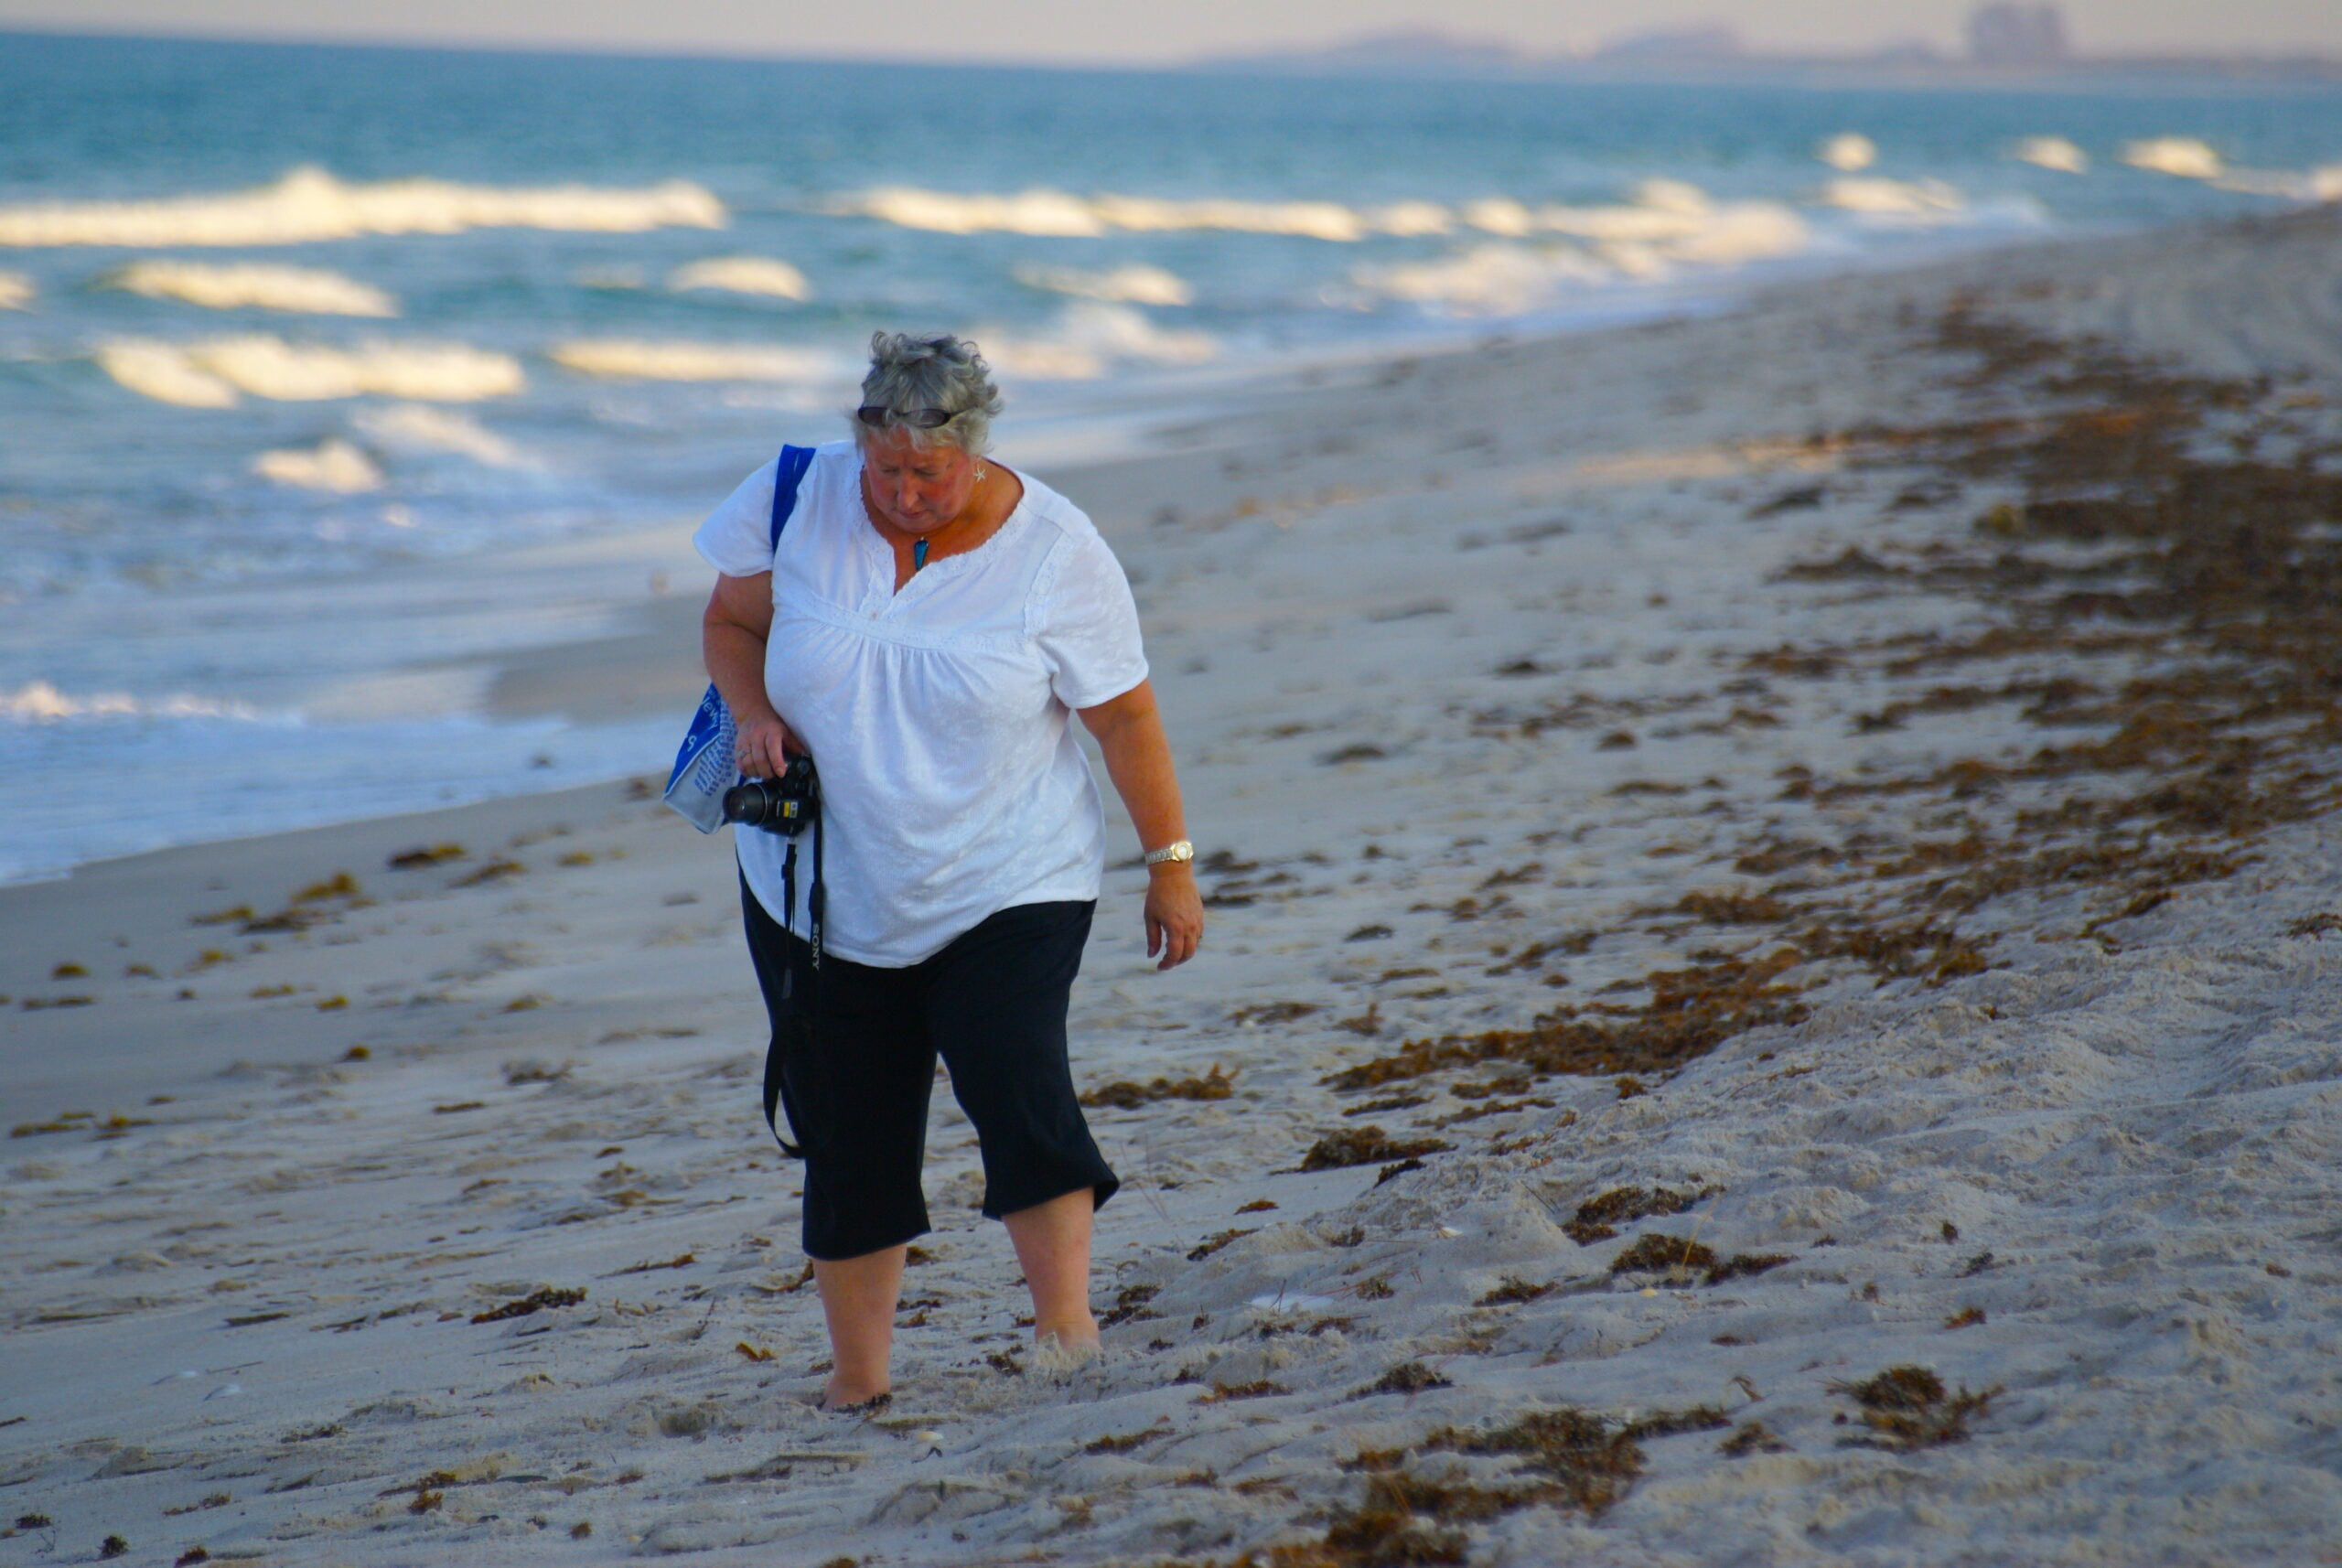 Terri Kirby Hathaway walking along the beach.